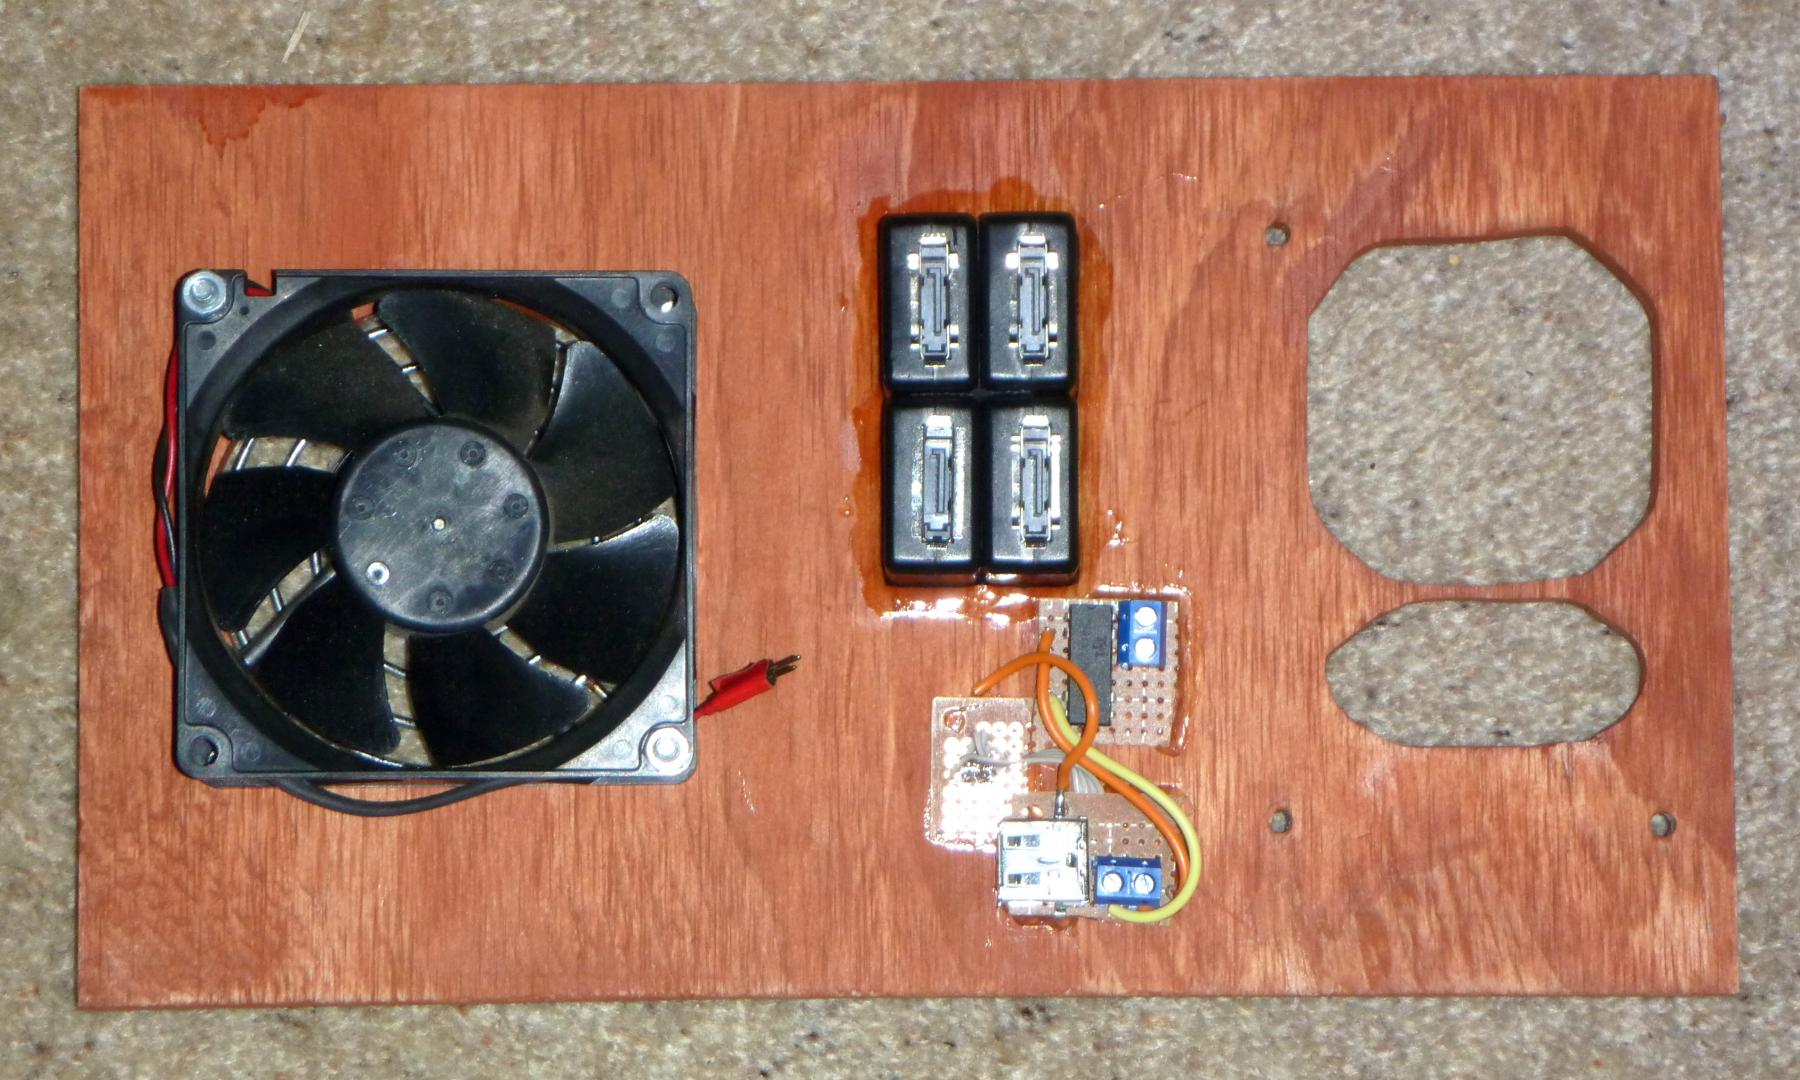 23-rear_inside_with_fan_esata_and_usb.jpg